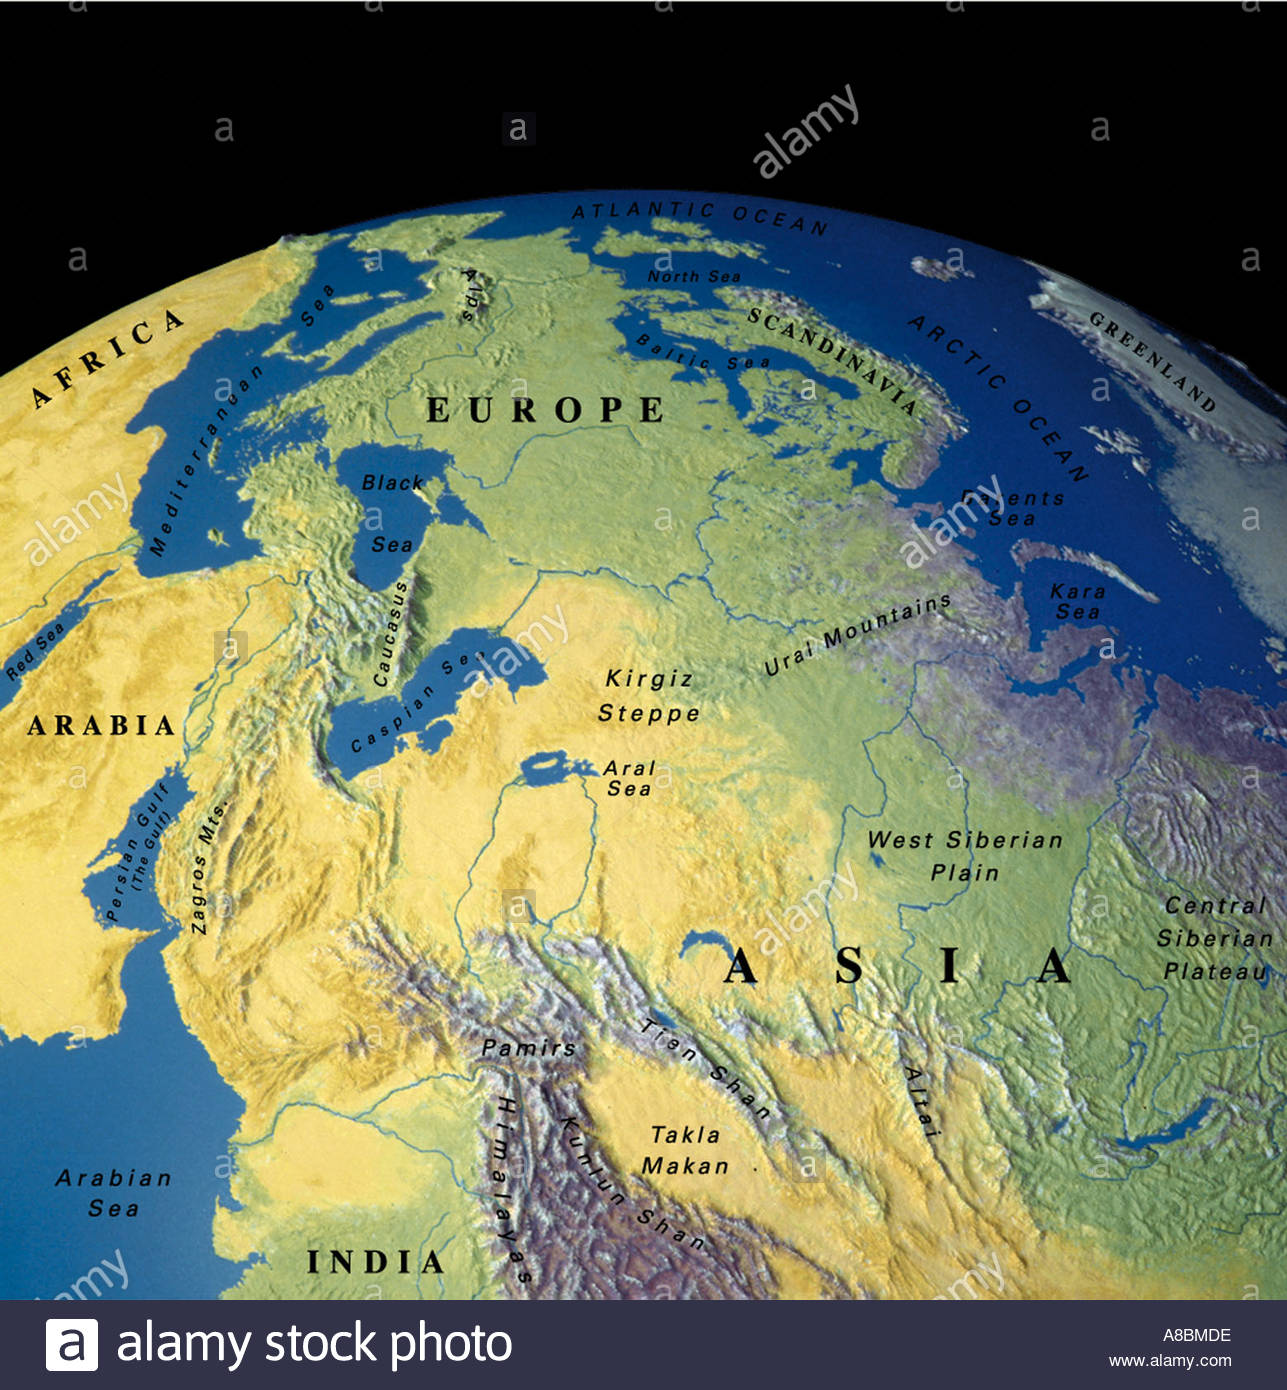 globe map maps Middle East Asia Stock Photo: 3934429 - Alamy